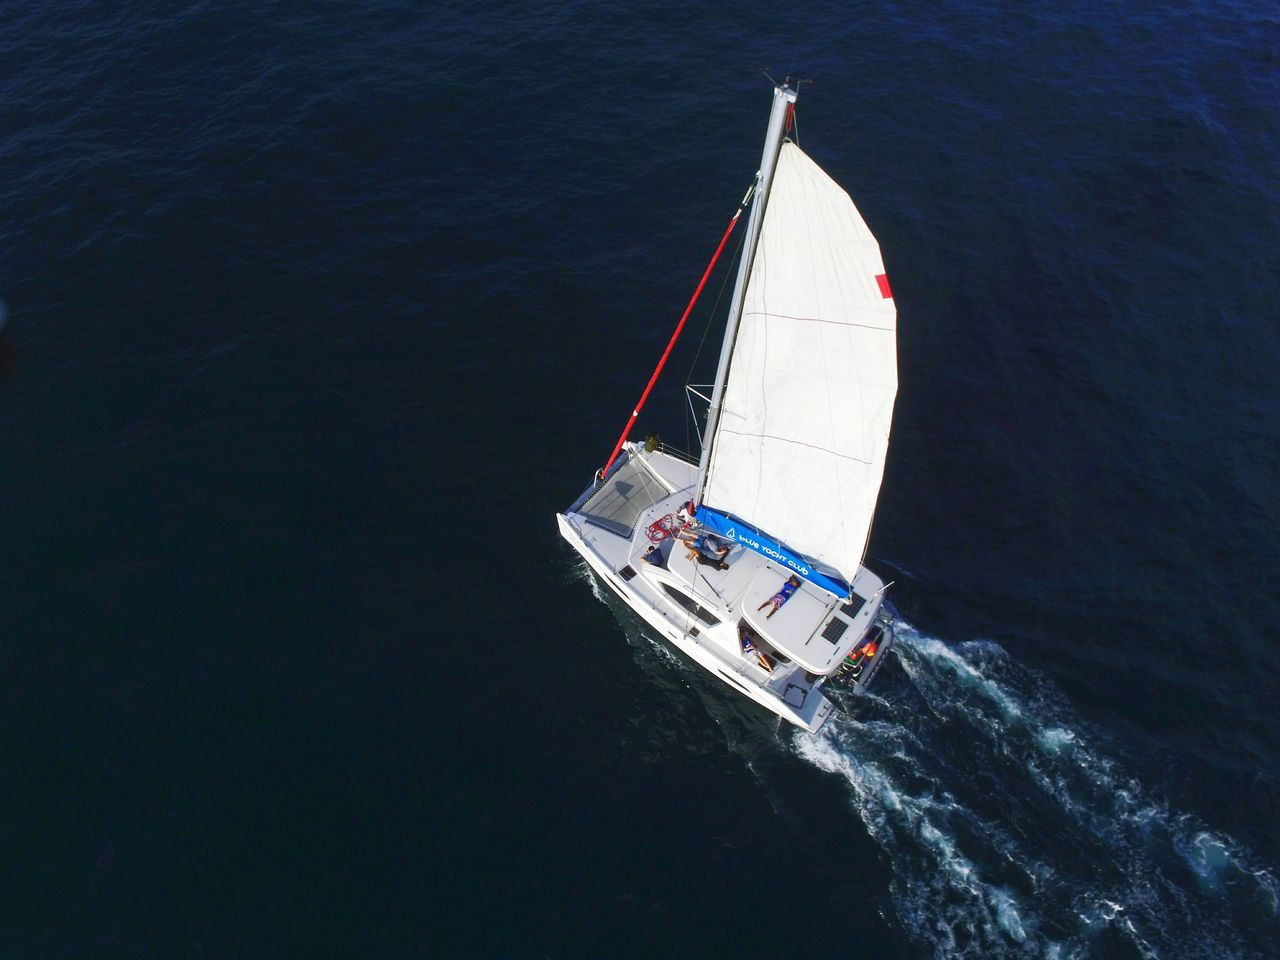 Boat Sailboat Nautical Vessel High Angle View Sailing People Sport Adults Only CompetitionYacht Aerial View Regatta Yachting Adult Day Group Of People Sports Team Vacations Sea Outdoors Crew Wave